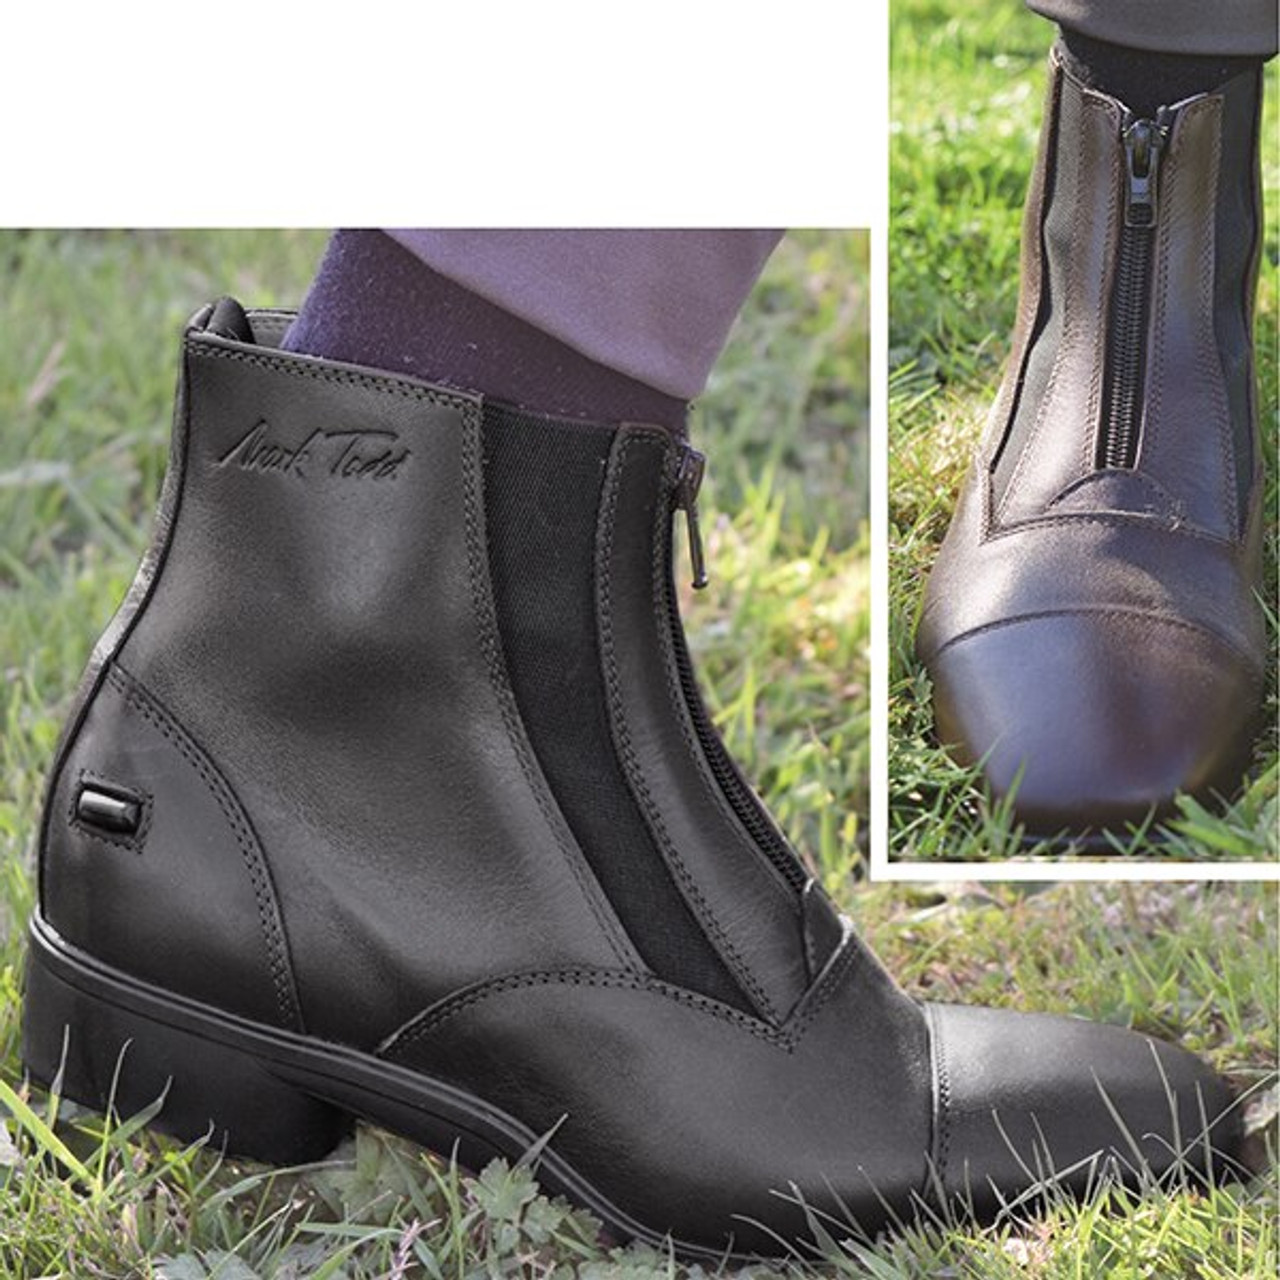 7b4fcd20be2b Mark Todd Timaru Dual Elastic Short Riding Boot - Black - HOOVES AND BOONIES